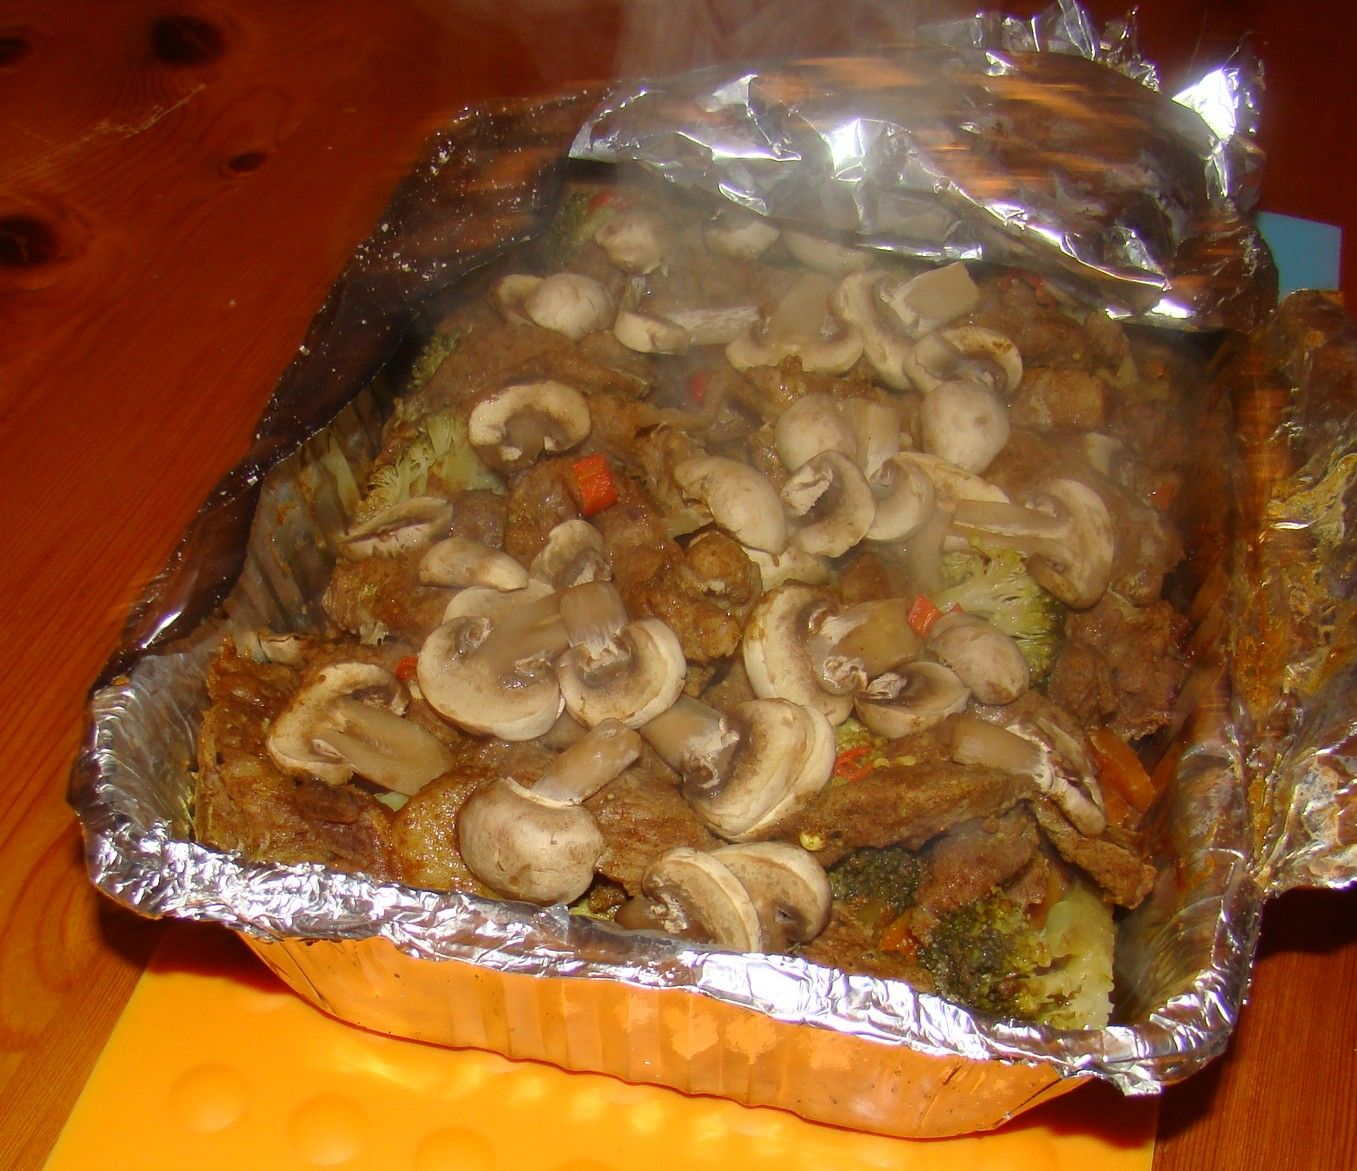 Right - time to get to cooking on the fire! Hereis a favourite dish that we cook on the fire often, andit'sa good example of the type of food we cookwhen camping- a pack of vegetables and meat...